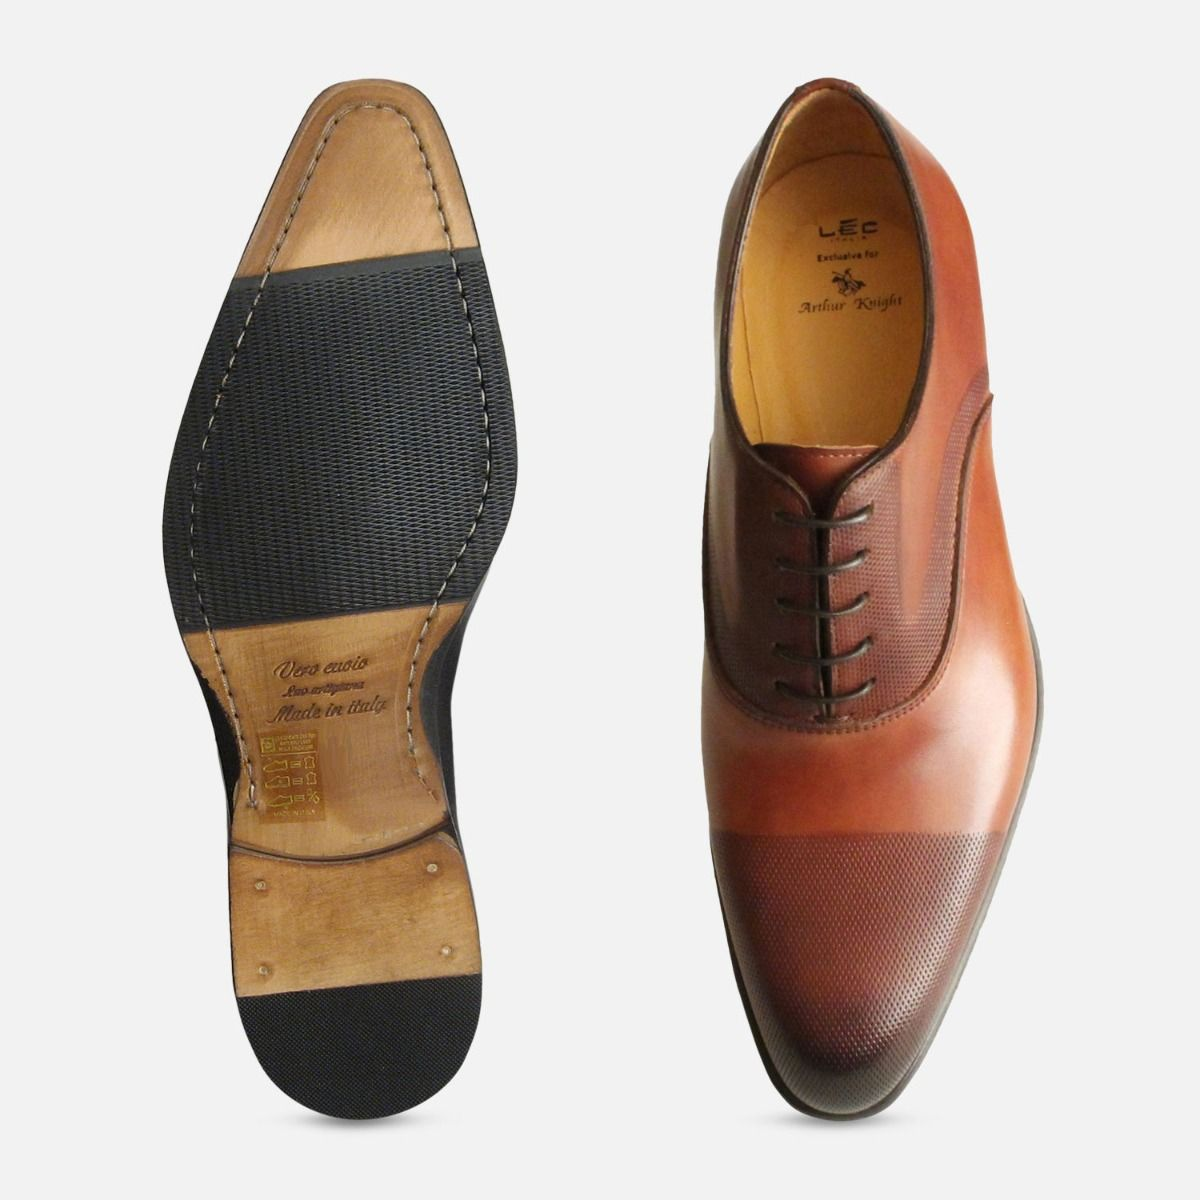 Executive Rich Brown Perforated Italian Oxford Shoes